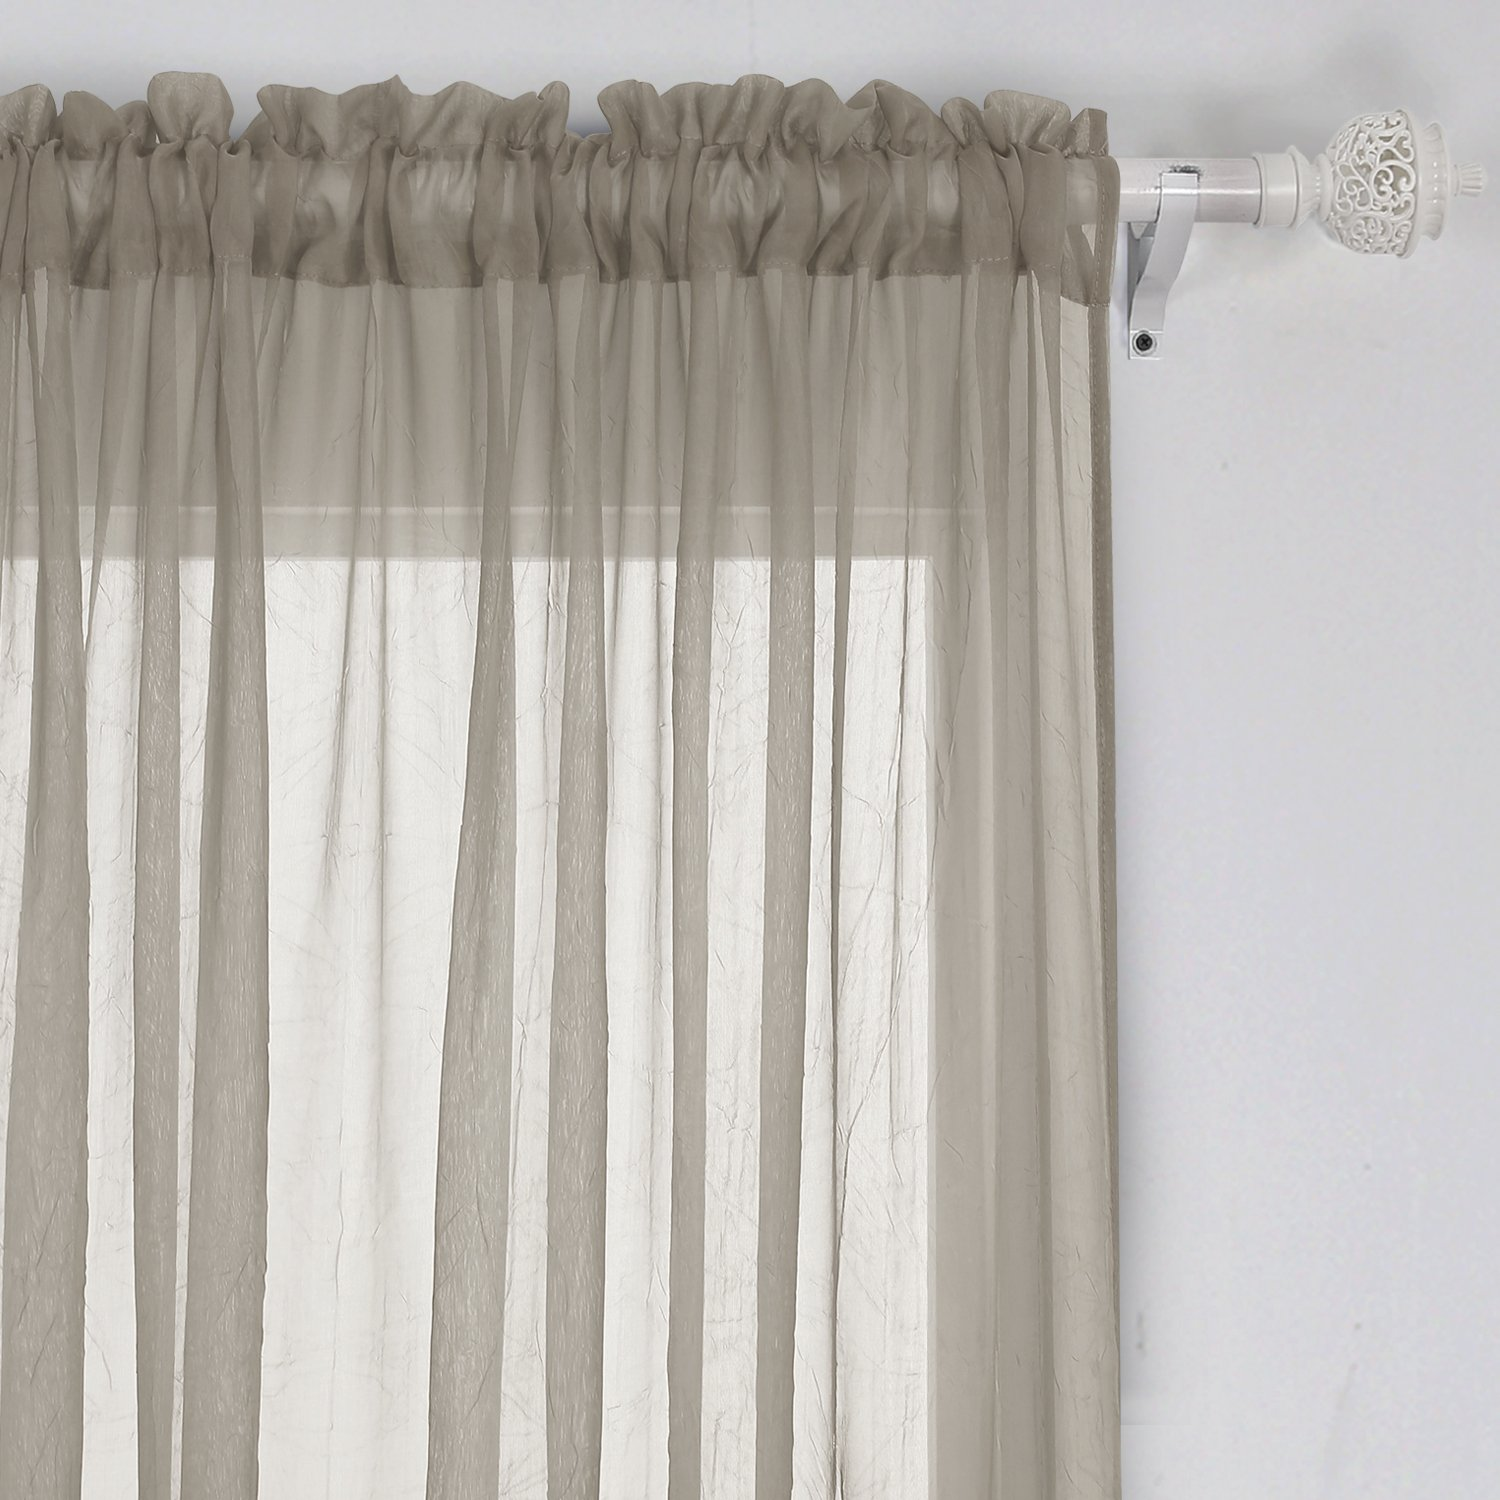 blog bo bohemian curtains valance rods decor handmade project diycurtainrods copper diy home curtain rod pipe blogs